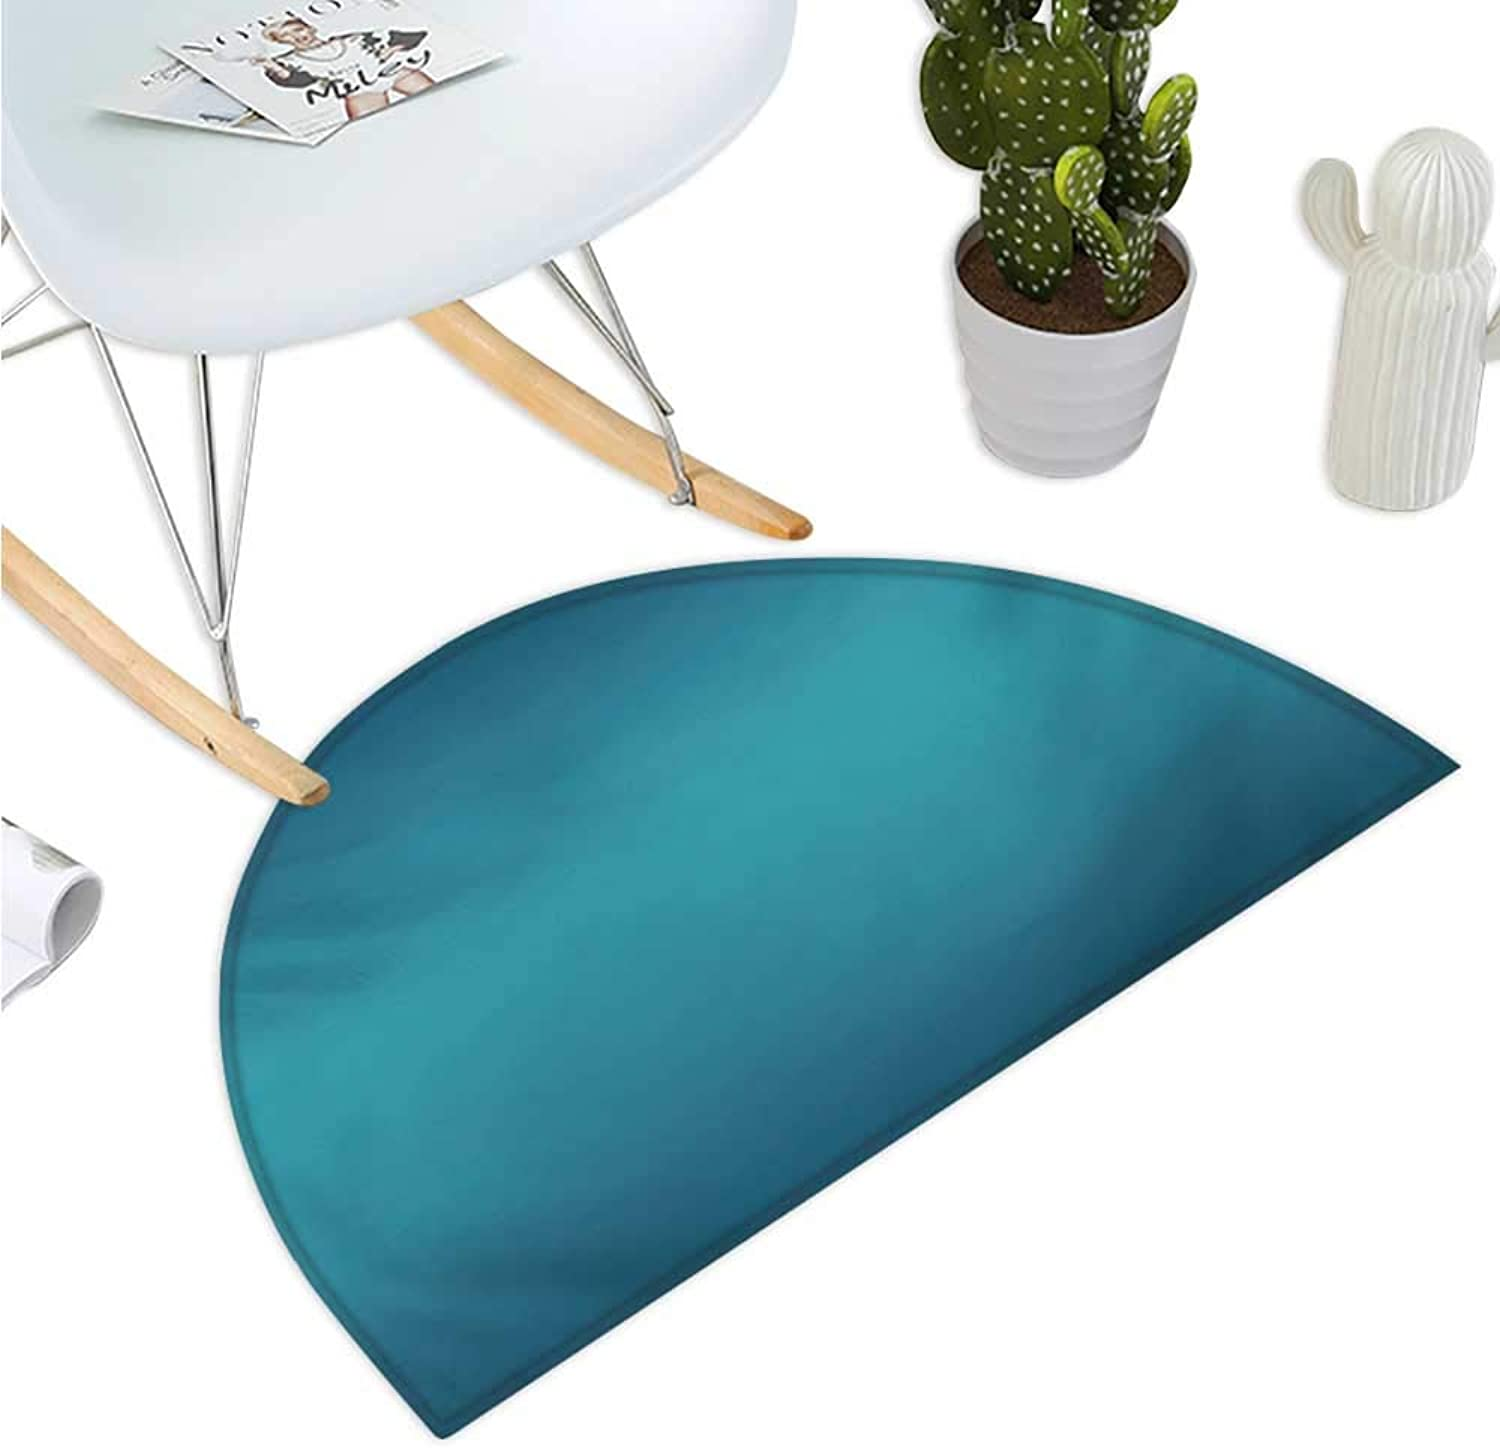 Ombre Half Round Door mats Deep bluee Tropical Ocean Exotic Lands Inspired Design Modern Digital Print Bathroom Mat H 35.4  xD 53.1  Petrol bluee